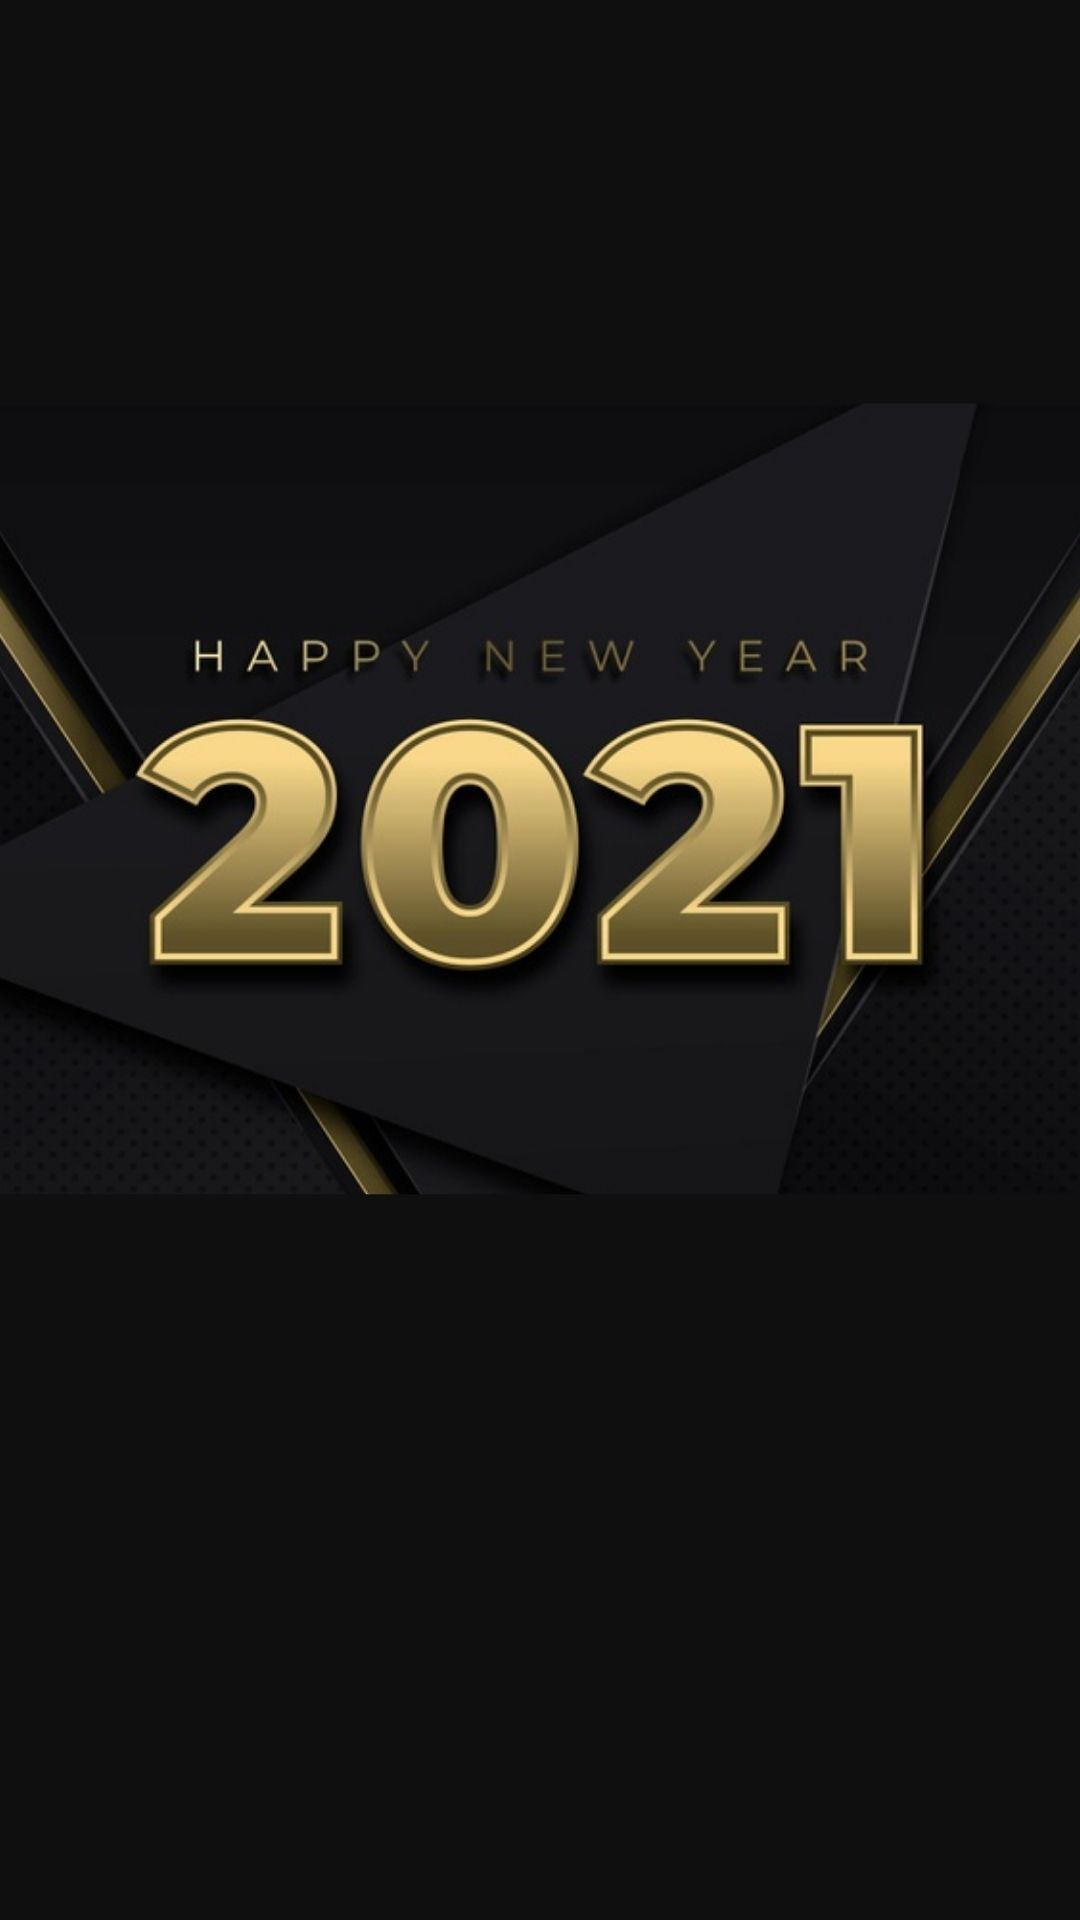 2021 Year Images Golden Hd Free Backgrounds Mobile New Year Images Happy New Year Photo Happy New Year Images